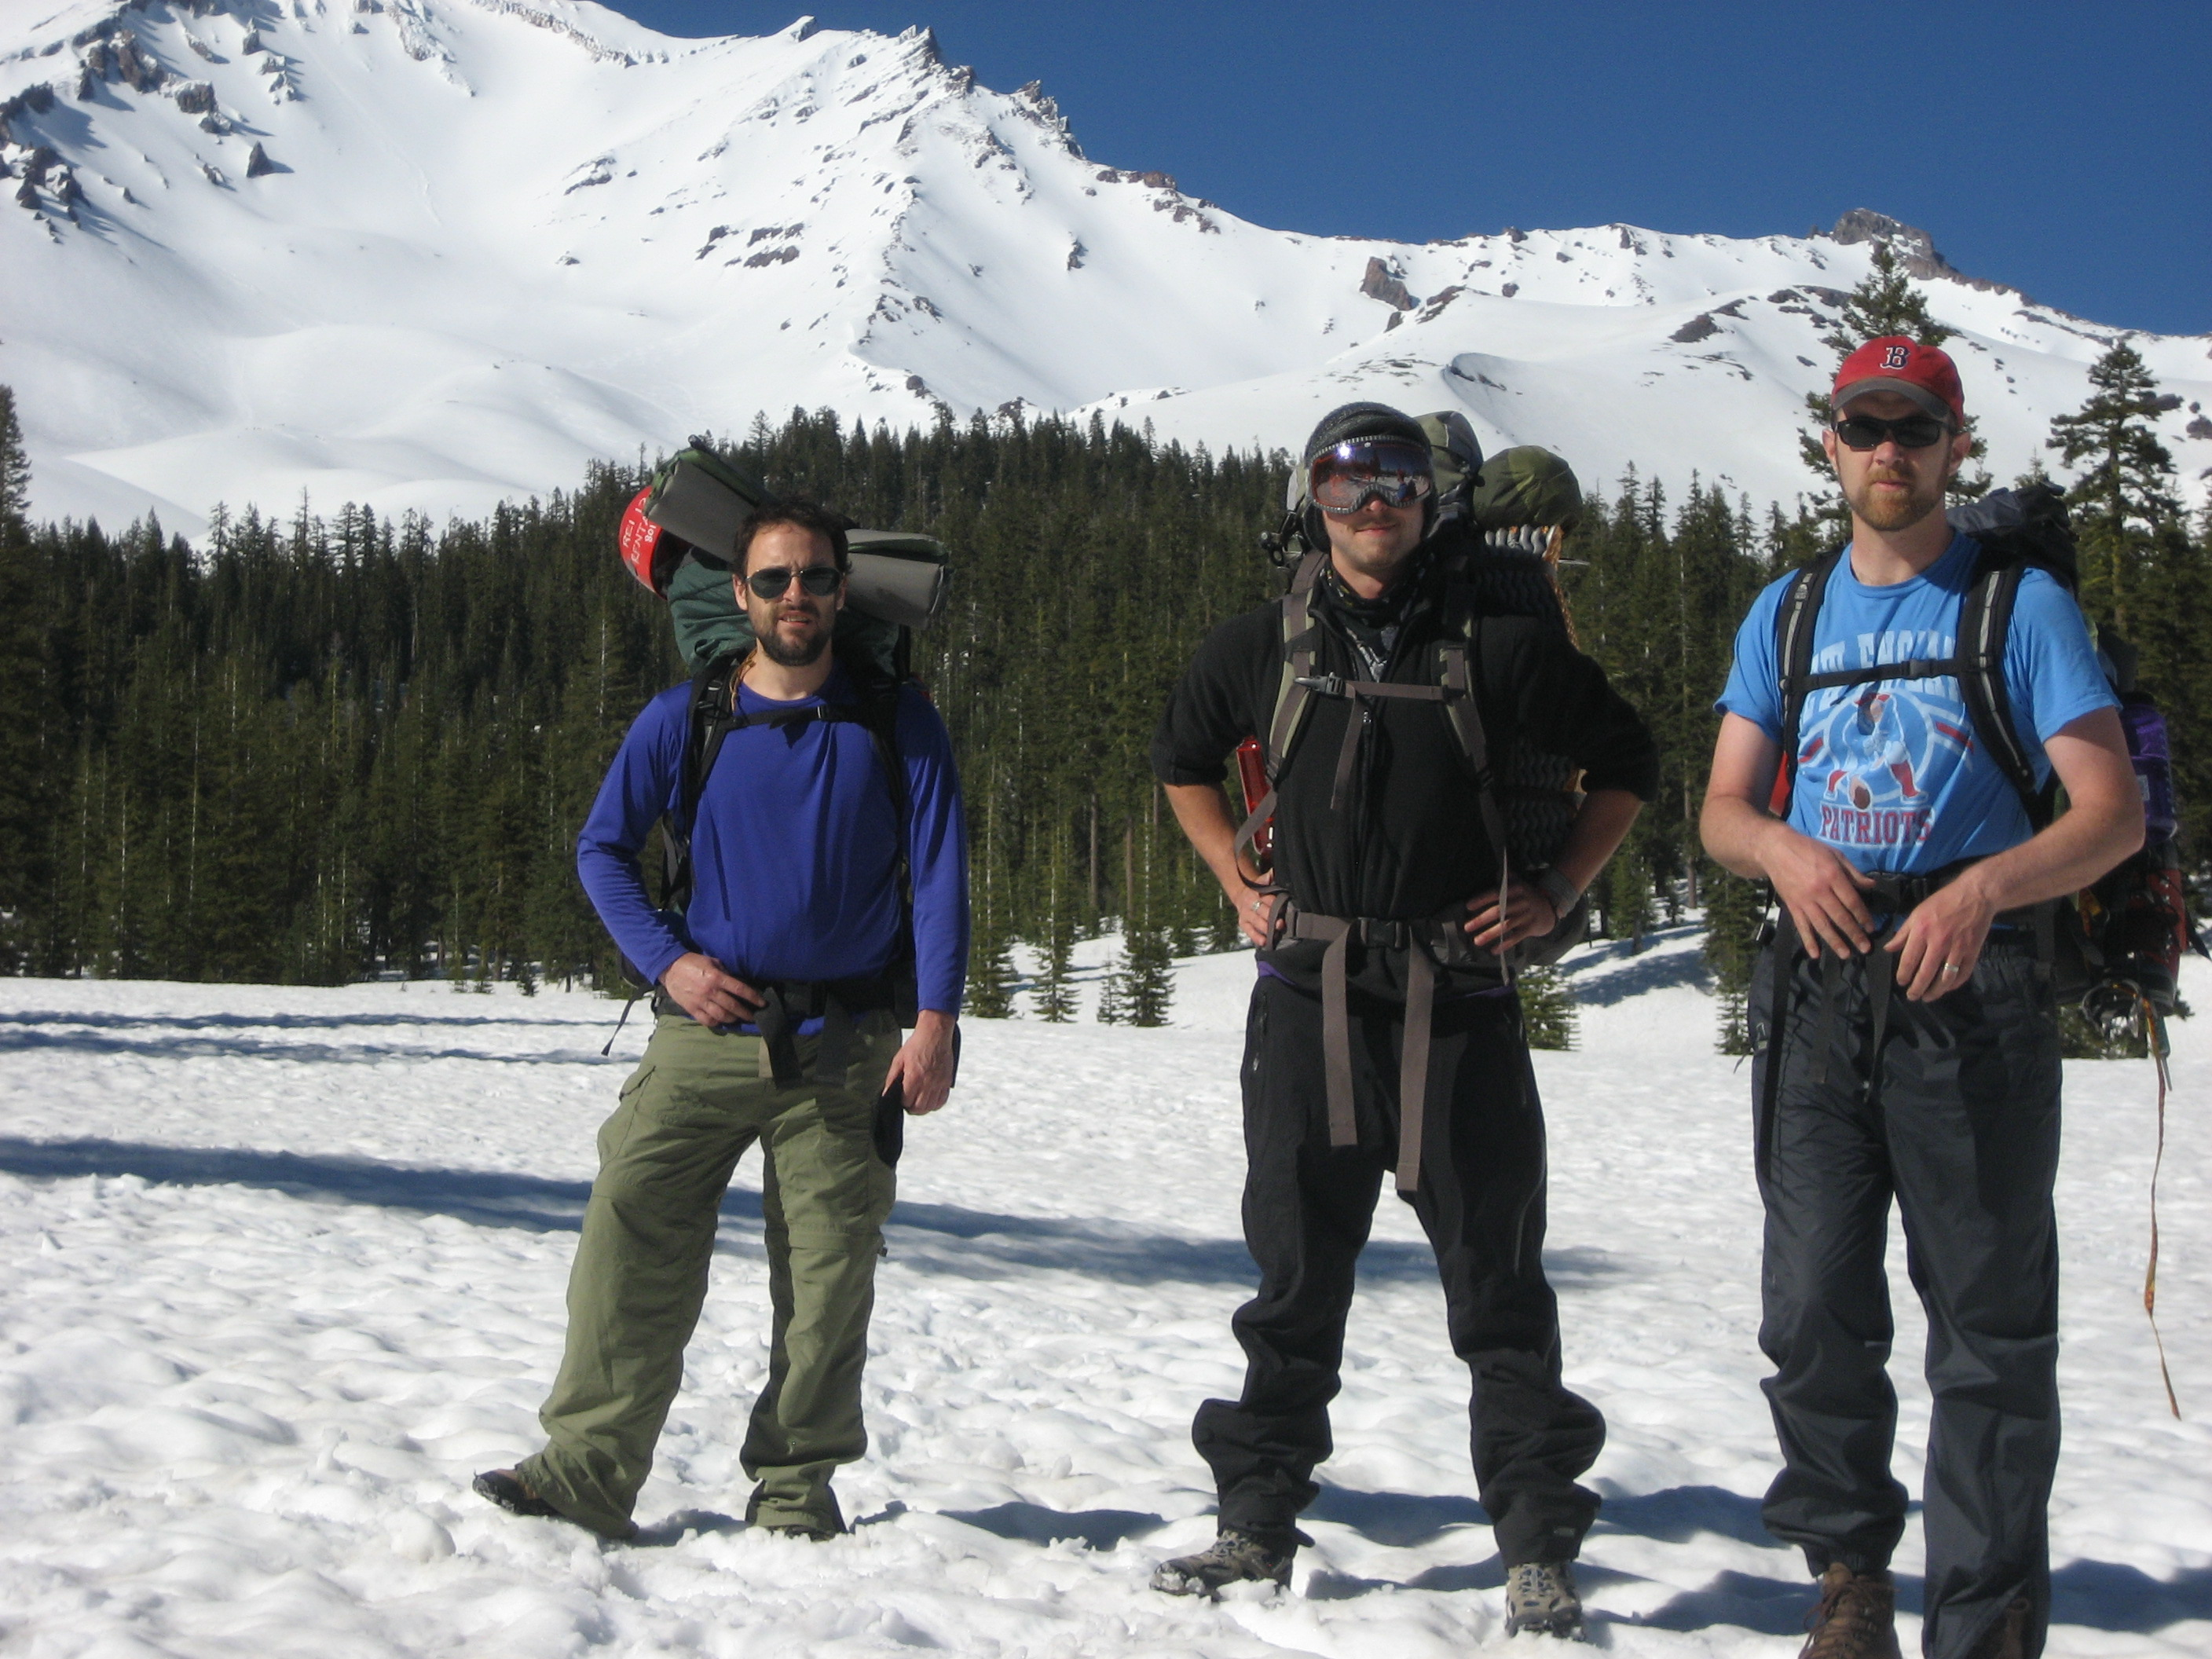 About to climb Mt. Shasta, 2010. (photo by some random dude who thought we were some kind of semi-famous elite mountain climbers or whatever)